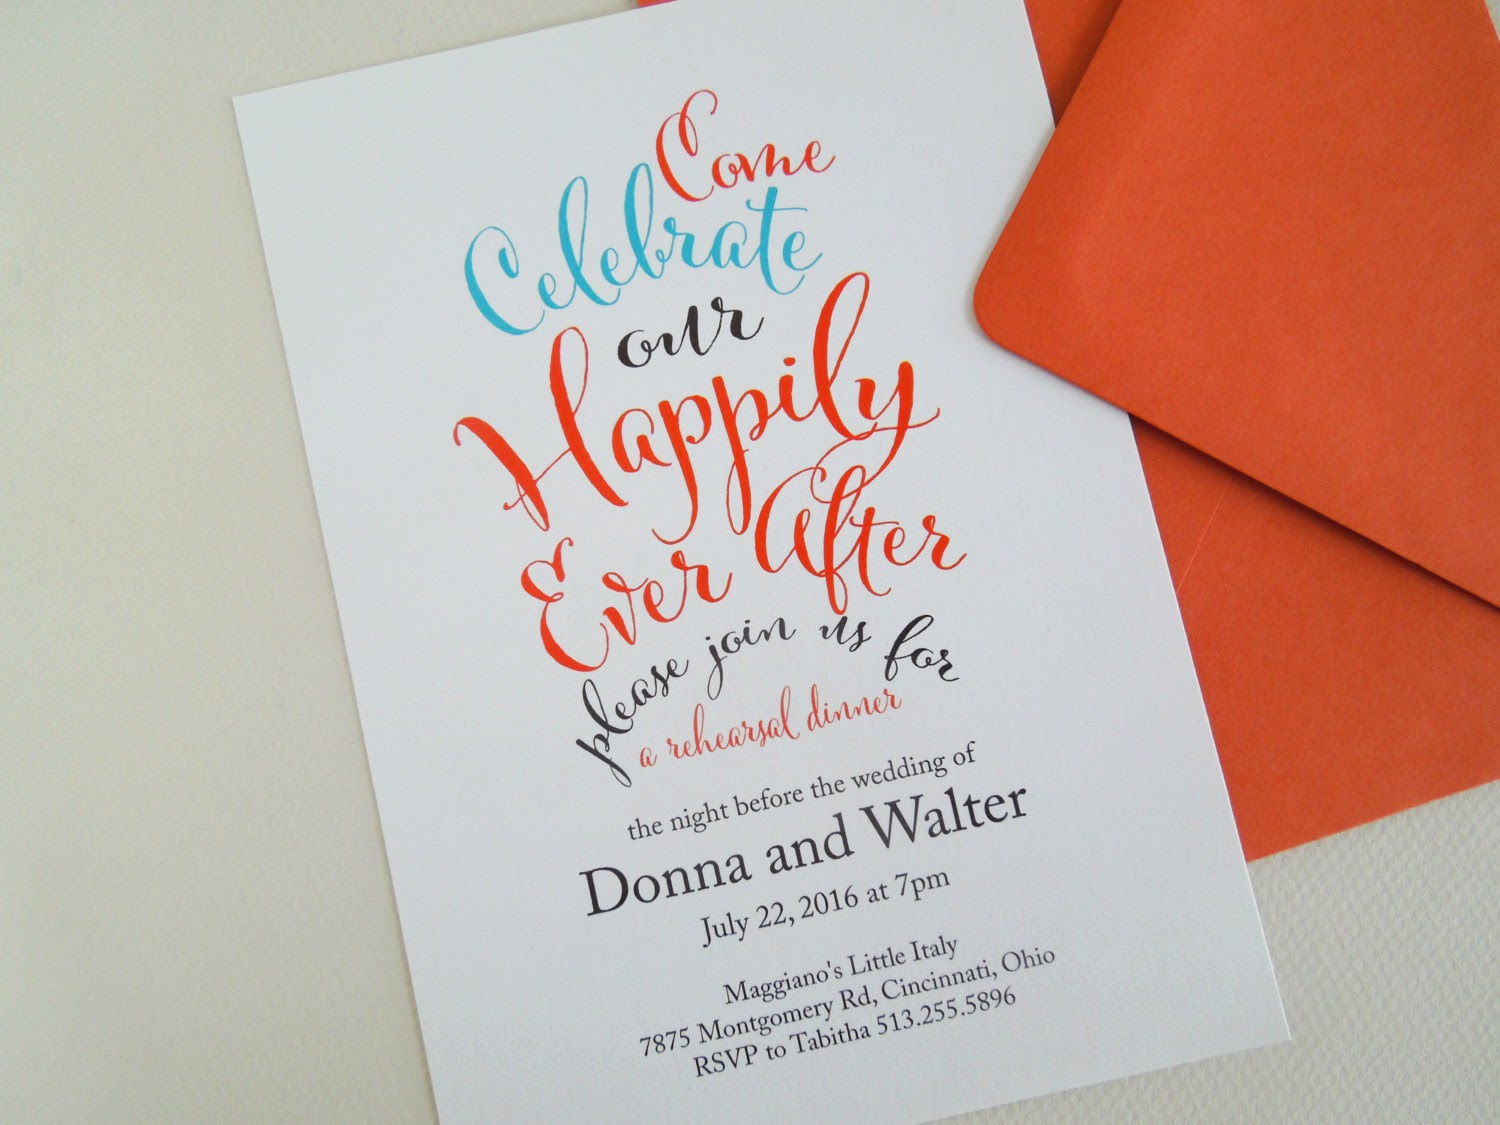 Invited Too Happily Ever After Invitations – After Rehearsal Dinner Party Invitations